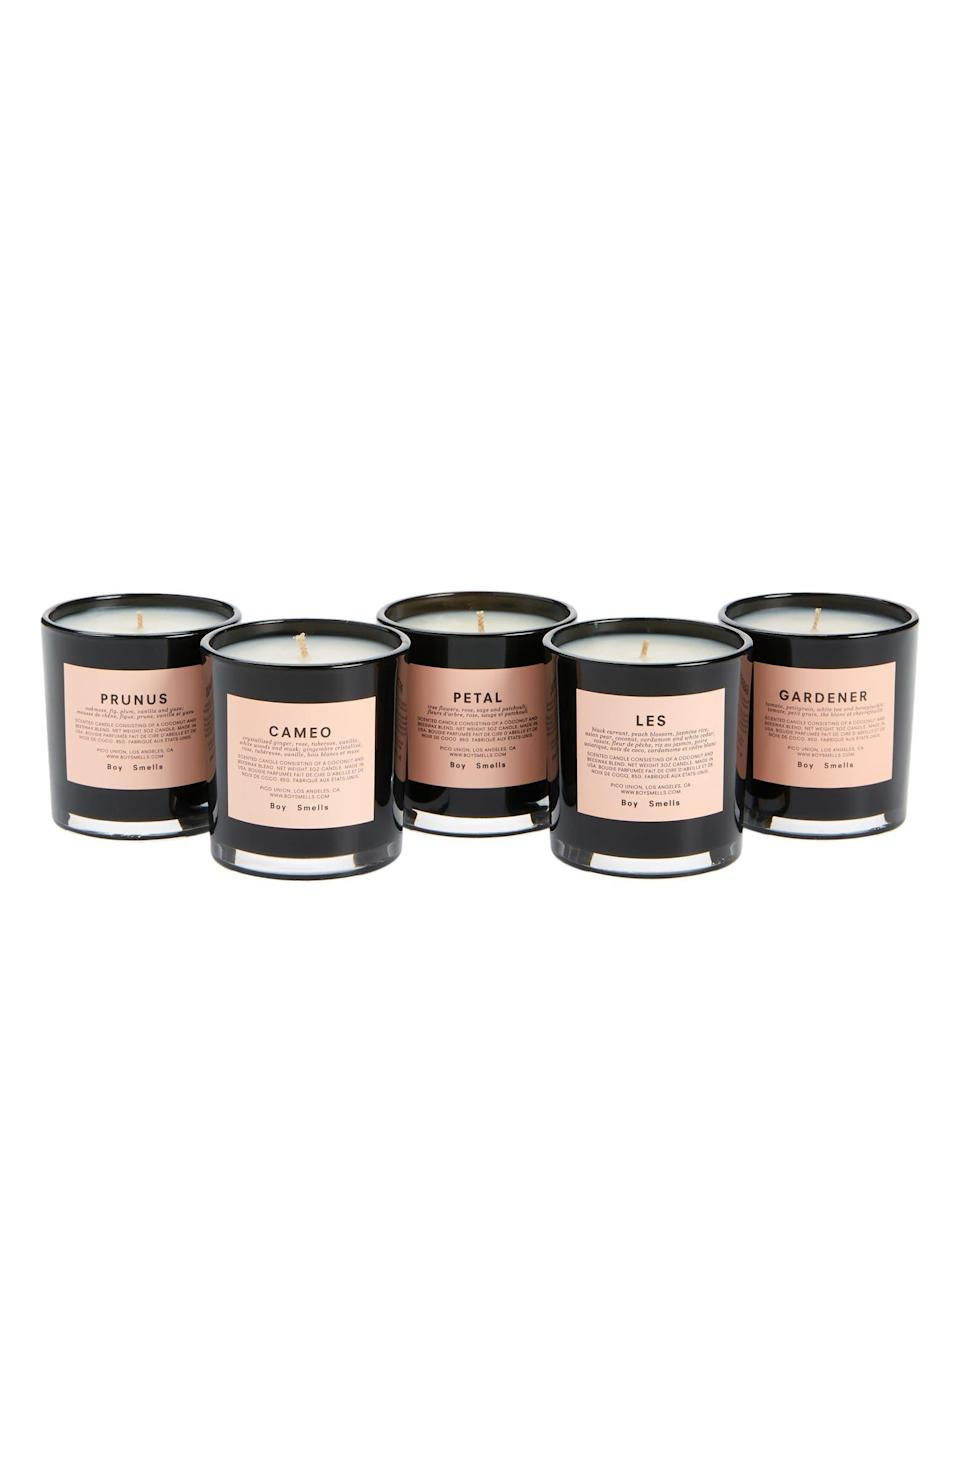 """<h2>Boy Smells Late Bloomer Votive Candle Set</h2><br><strong>SOLD OUT (FOR NOW)</strong><br>One of our Shopping team writer's top picks from the sale has sadly sold out (we had a hunch it would!) — but, if you're still looking to whet your trendy candle beak, don't fret: we've got a next-best-scented deal to <a href=""""https://www.nordstrom.com/brands/boy-smells--17787"""" rel=""""nofollow noopener"""" target=""""_blank"""" data-ylk=""""slk:Boy Smells"""" class=""""link rapid-noclick-resp"""">Boy Smells</a> for you on the next slide.<br><br><em>Shop more <a href=""""https://go.skimresources.com?id=30283X879131&xs=1&url=https%3A%2F%2Fwww.nordstrom.com%2Fbrowse%2Fanniversary-sale%2Fall%3Fcampaign%3D0728publicgnpt1%26jid%3Dj012165-15573%26cid%3D00000%26cm_sp%3Dmerch-_-anniversary_15573_j012165-_-catpromo_corp_persnav_shop%26%3D%26postalCodeAvailability%3D10543%26filterByProductType%3Dhome_candles-home-fragrance&sref=https%3A%2F%2Fwww.refinery29.com%2Fen-us%2Fnordstrom-anniversary-sale-best-sellers"""" rel=""""nofollow noopener"""" target=""""_blank"""" data-ylk=""""slk:Nordstrom Anniversary Sale candles"""" class=""""link rapid-noclick-resp"""">Nordstrom Anniversary Sale candles</a></em><br><br><strong>Boy Smells</strong> Late Bloomer Votive Candle Set, $, available at <a href=""""https://go.skimresources.com/?id=30283X879131&url=https%3A%2F%2Fwww.nordstrom.com%2Fs%2Fboy-smells-late-bloomer-votive-candle-set-80-value%2F5913321"""" rel=""""nofollow noopener"""" target=""""_blank"""" data-ylk=""""slk:Nordstrom"""" class=""""link rapid-noclick-resp"""">Nordstrom</a>"""